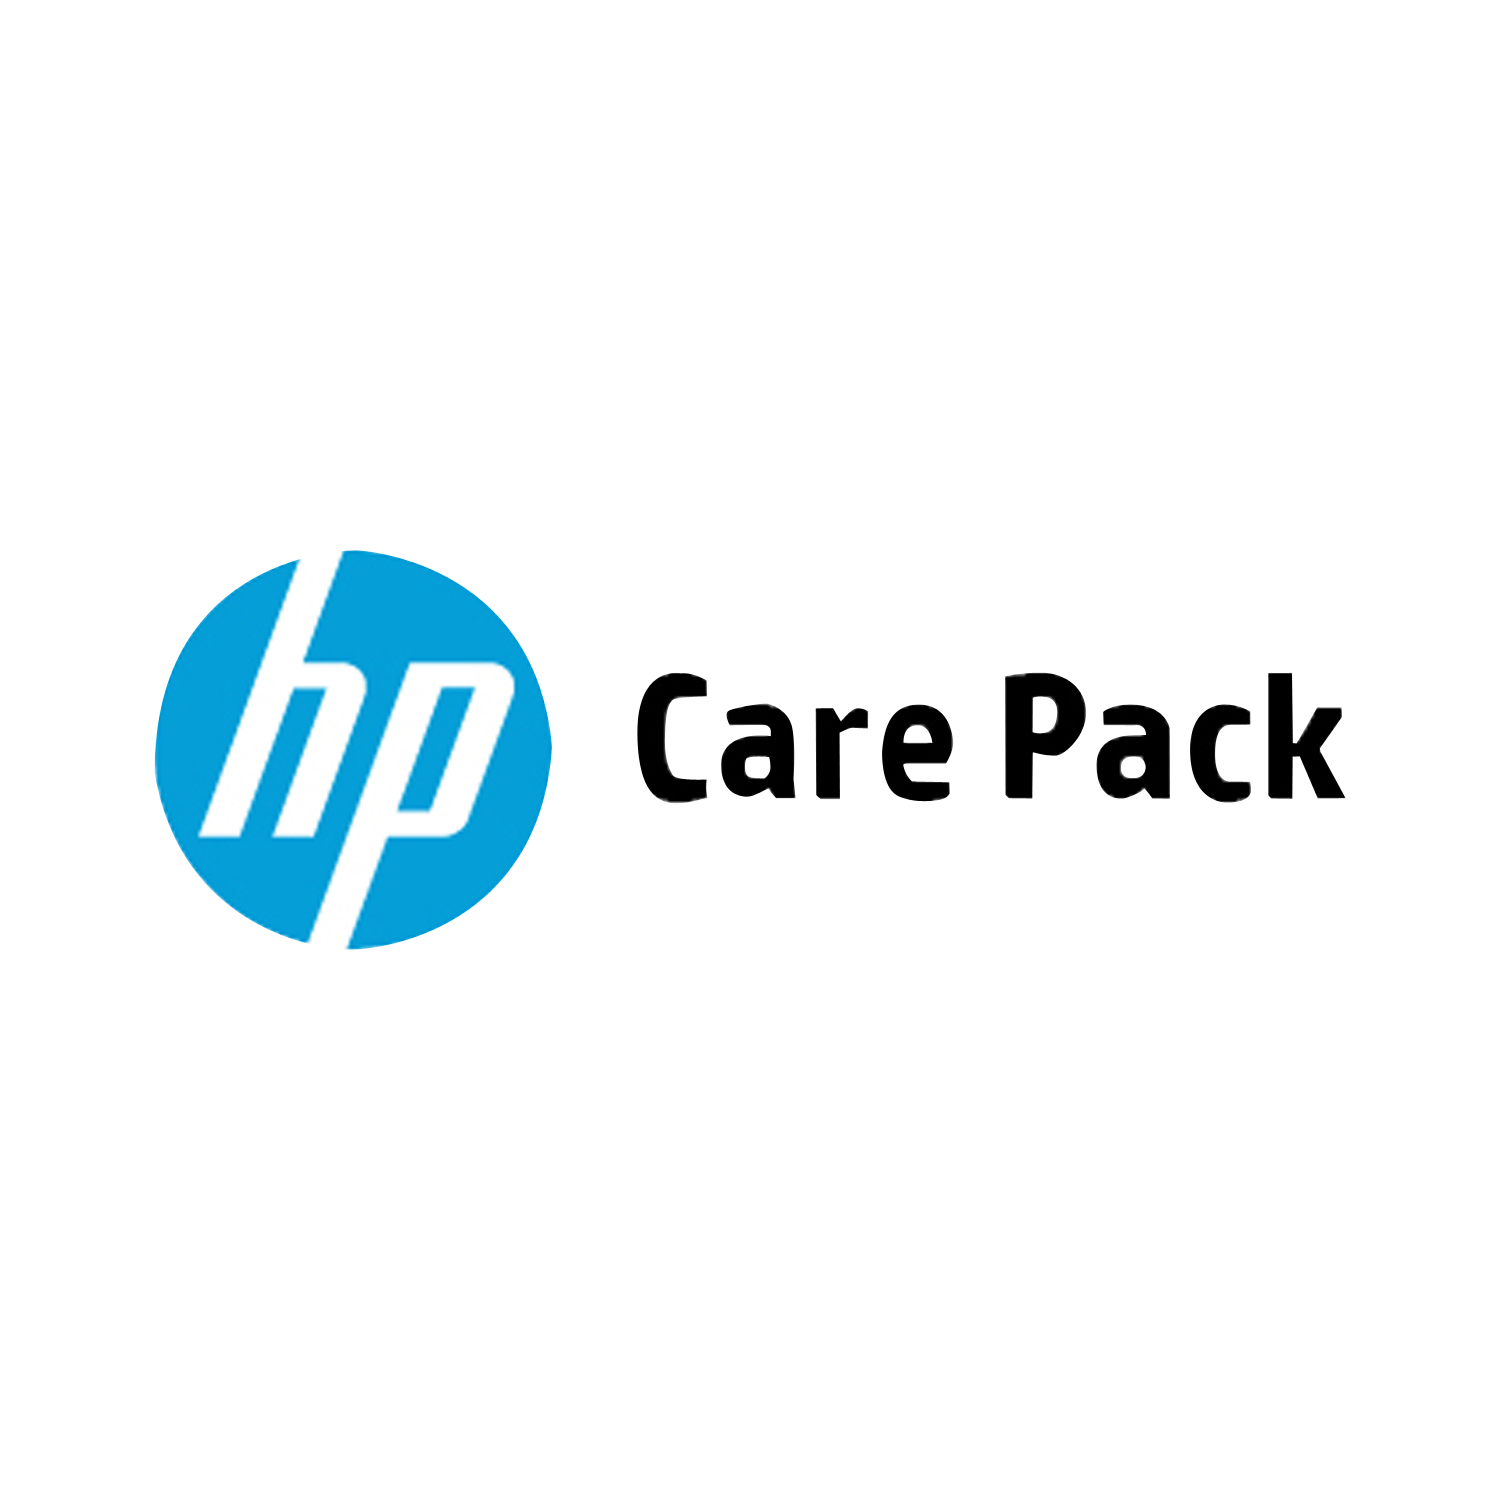 Electronic HP Care Pack Software Technical Support - Technical Support - For HP Digital Sending Software - 1 Device - Phone Consulting - 1 Year - 9x5 U0QT4E - C2000